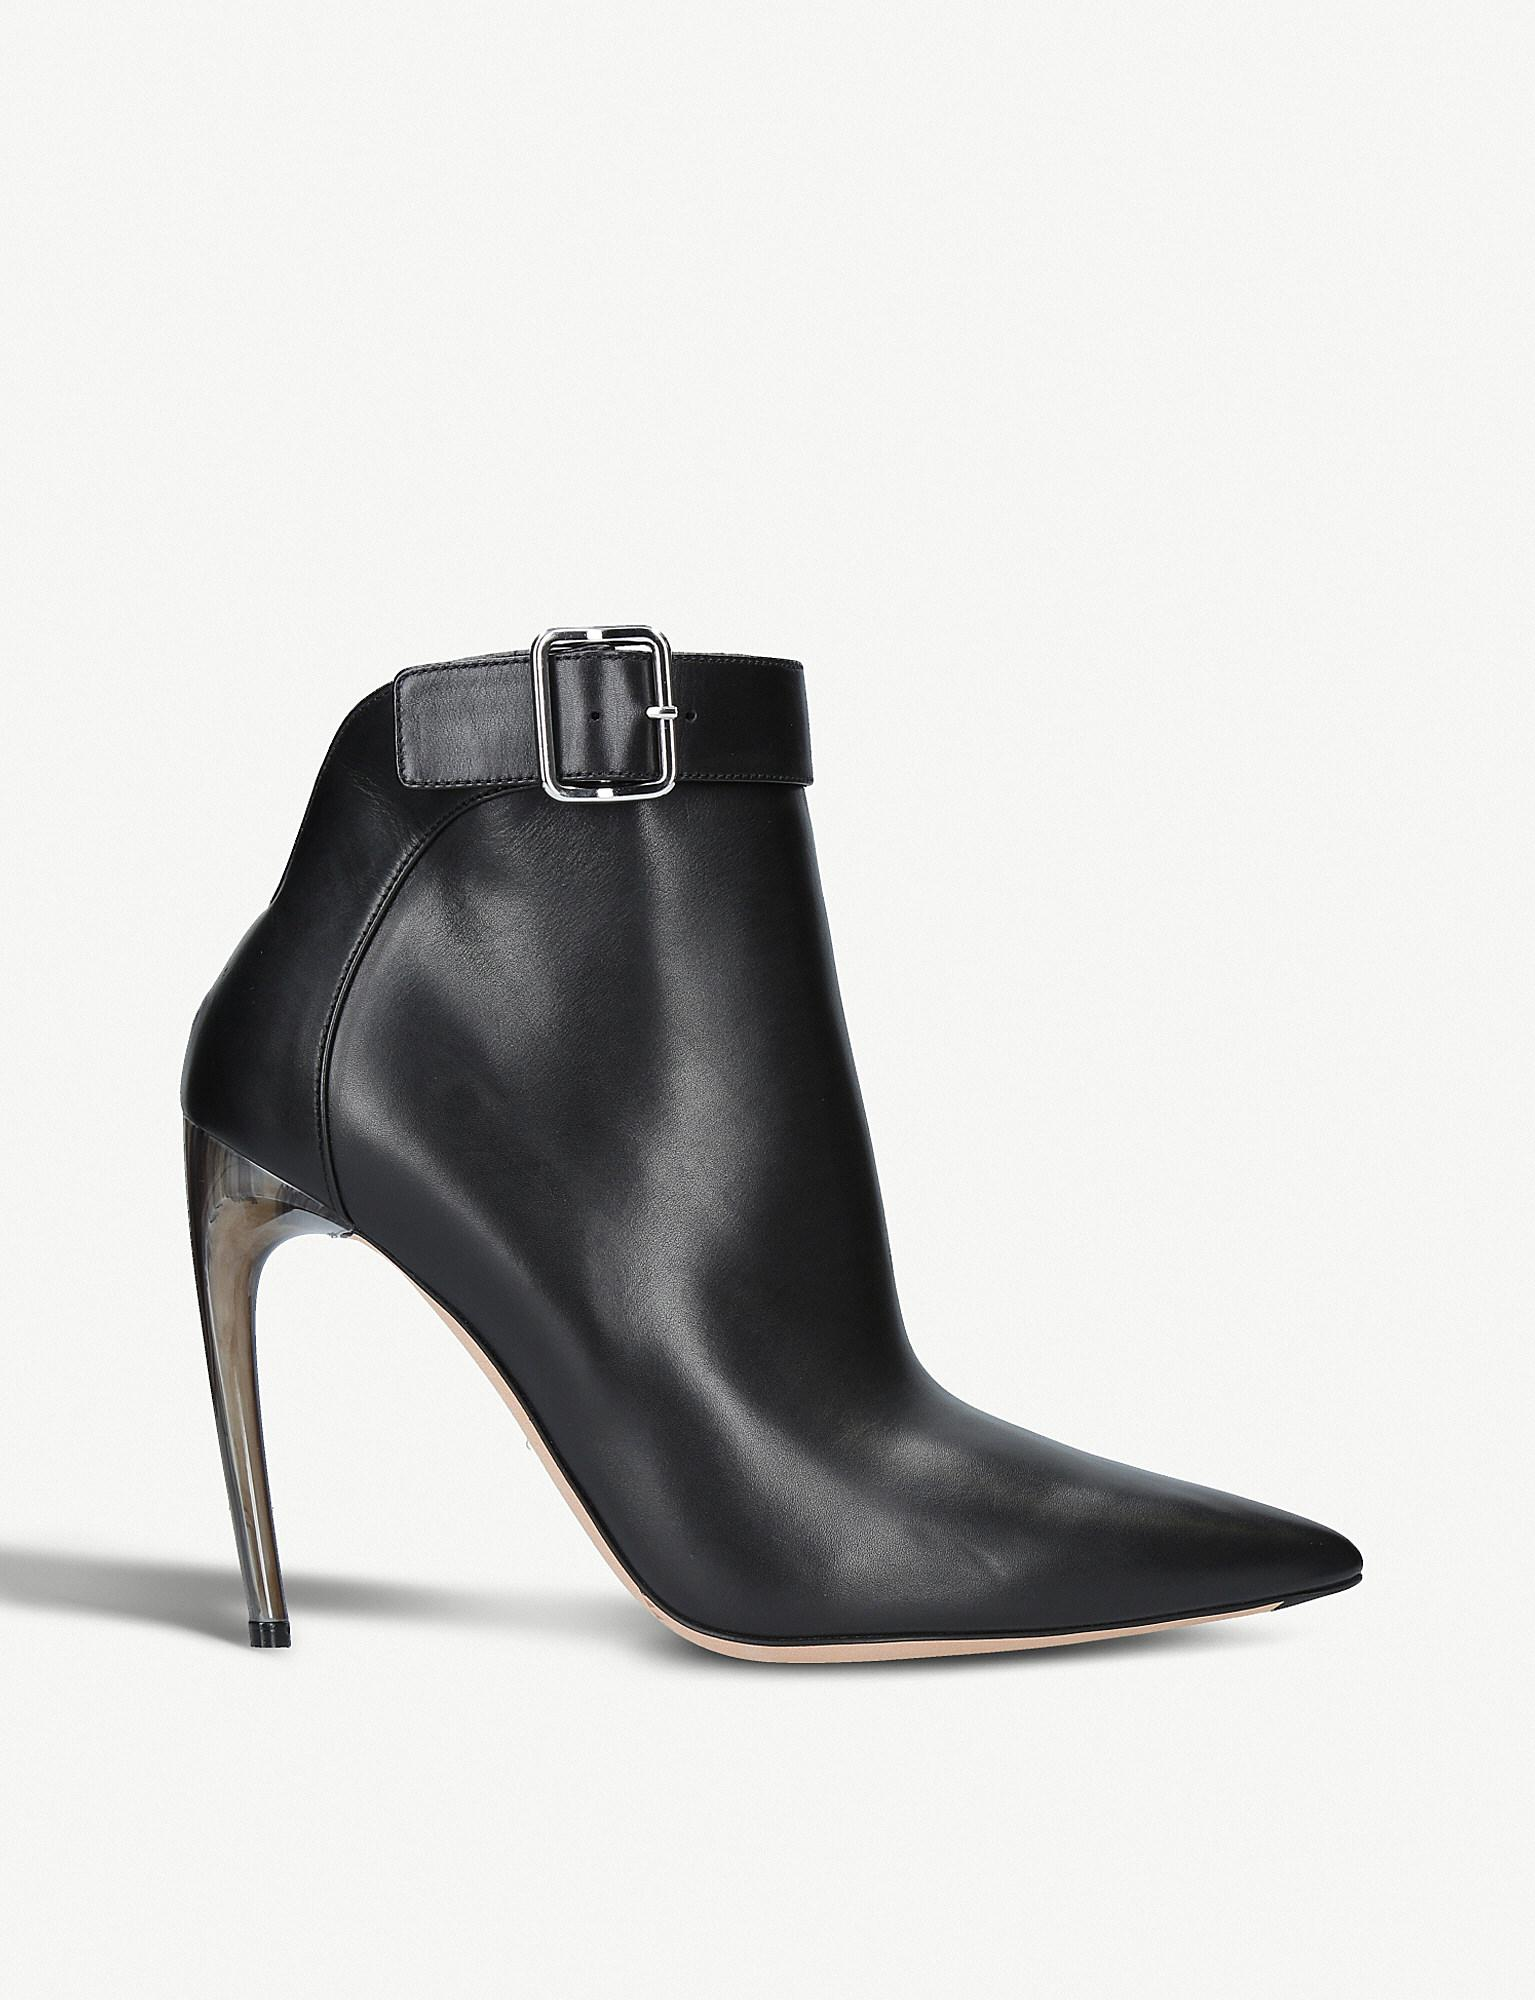 horn heel ankle boots - Black Alexander McQueen Clearance Wide Range Of Pay With Paypal Sale Online New Arrival Cheap Online Free Shipping 100% Guaranteed Cheap Sale Deals 1EeDWtk